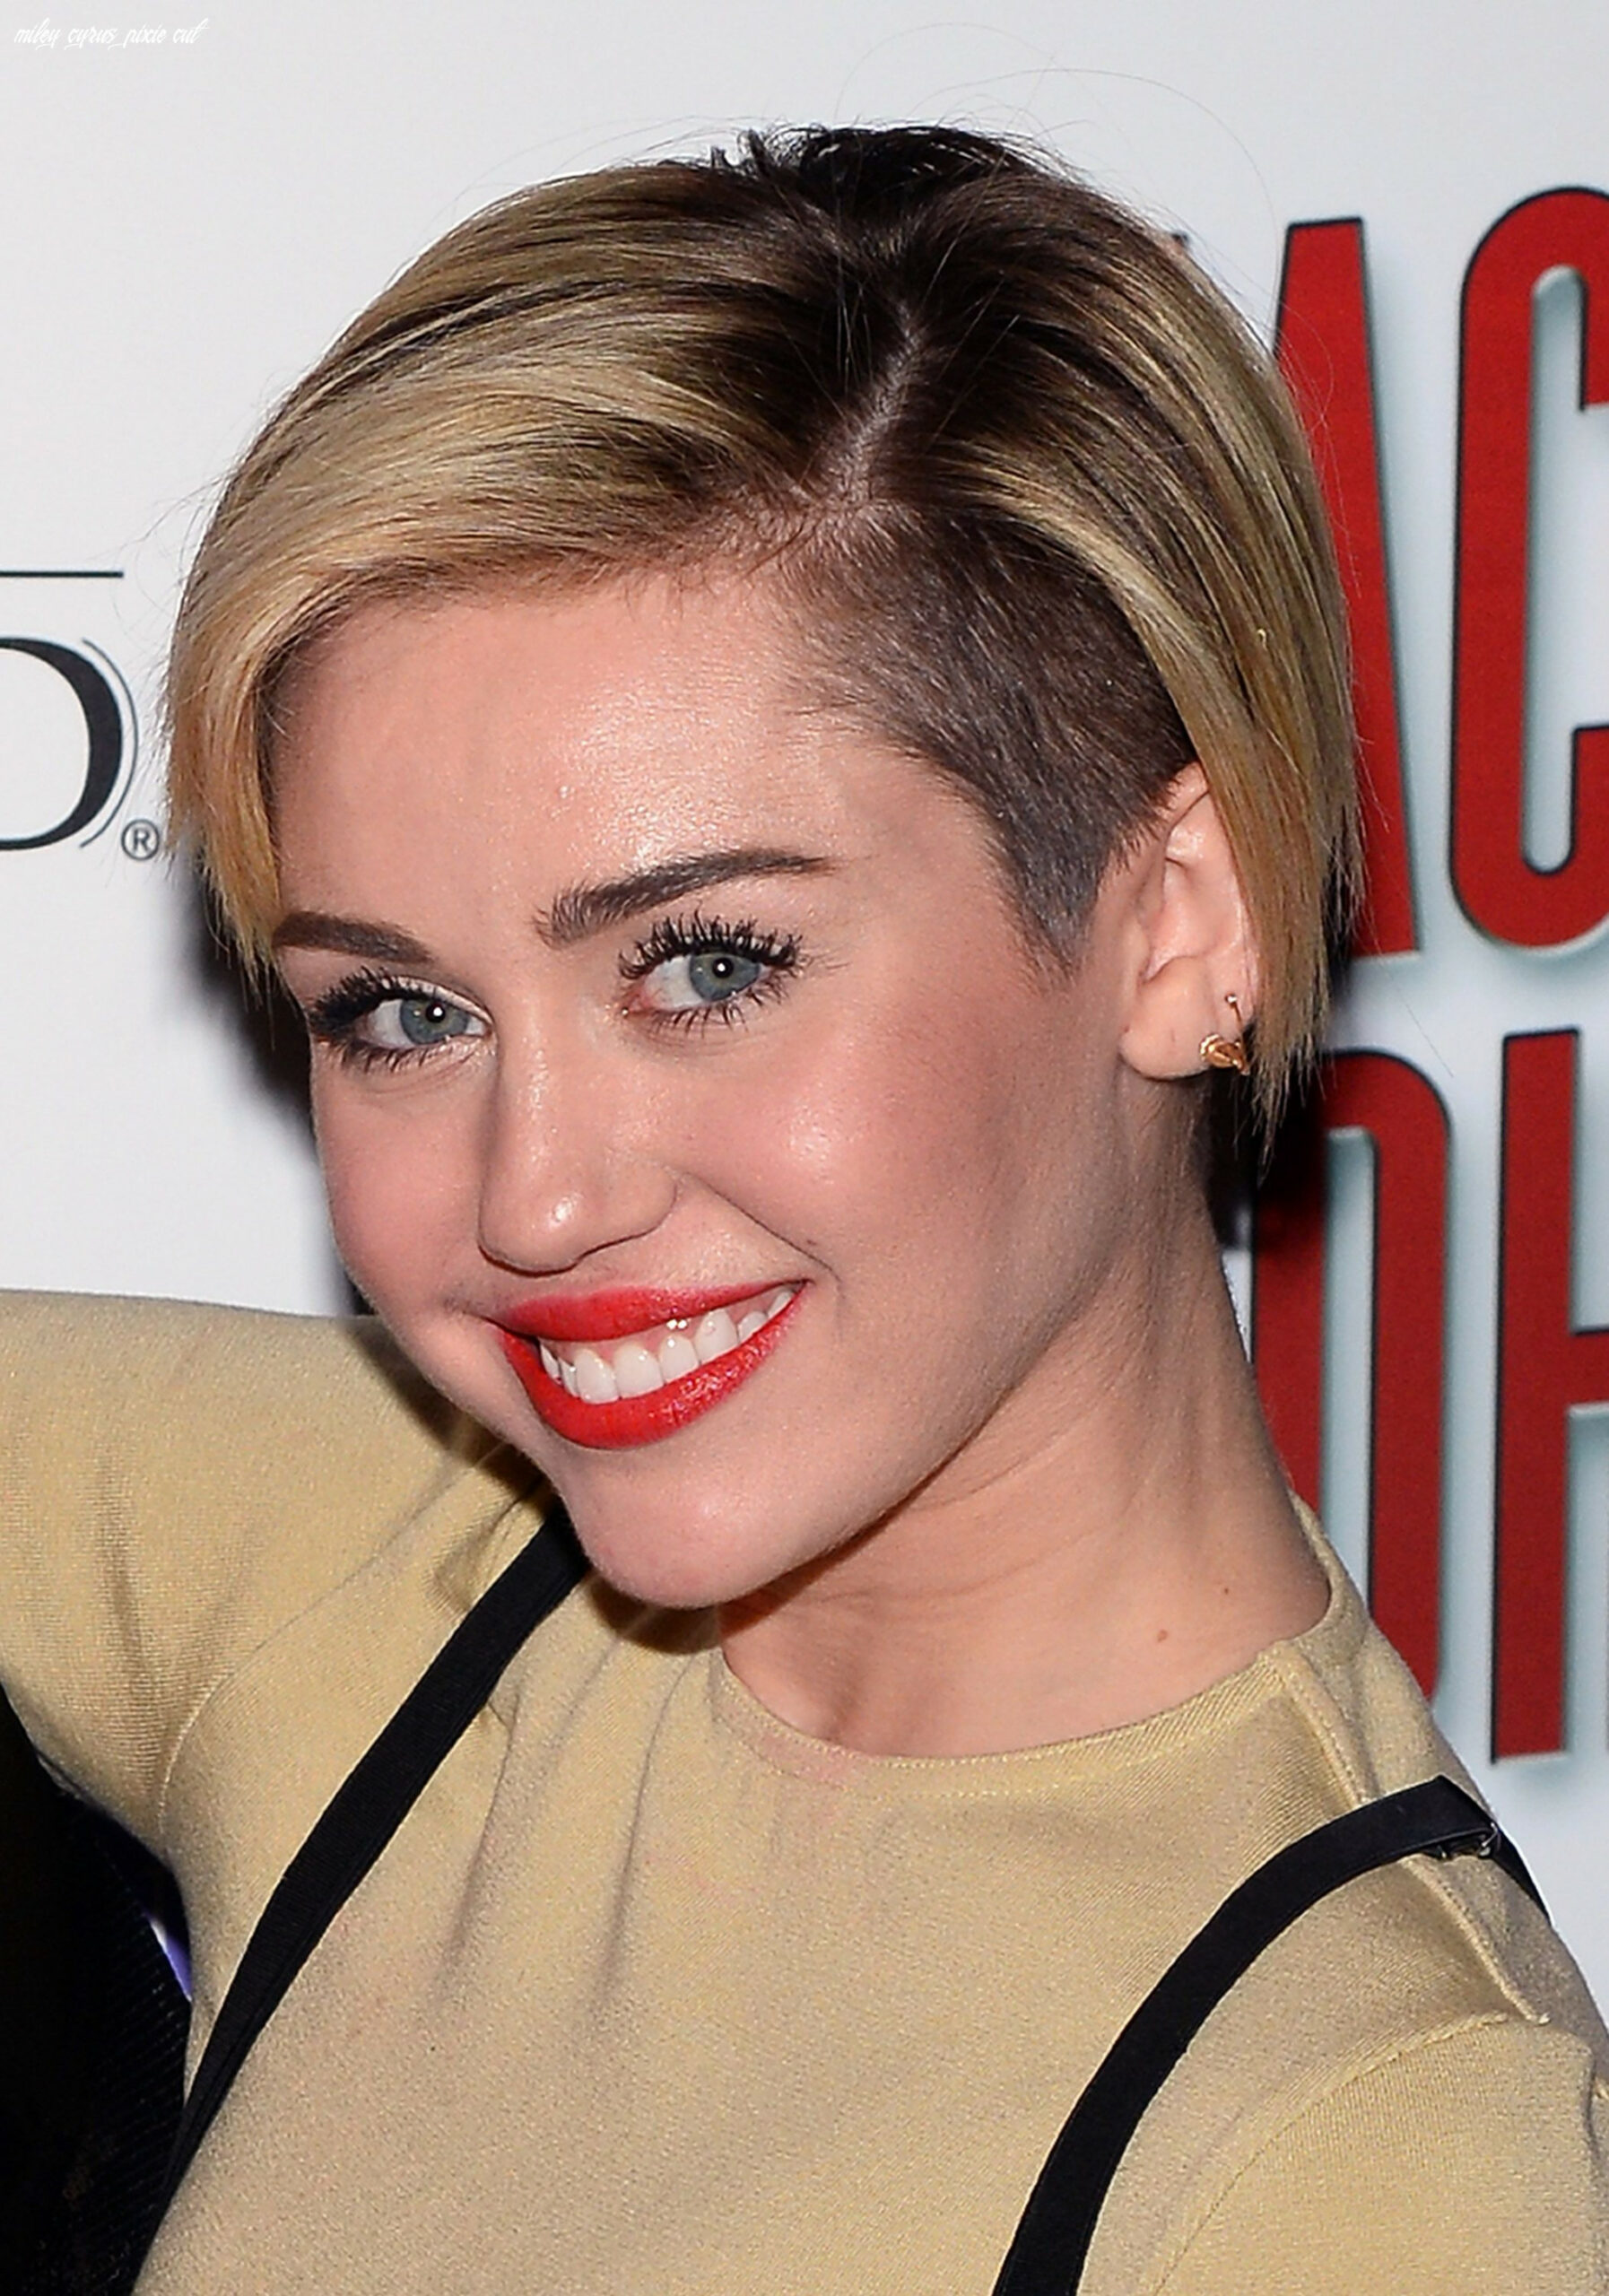 Miley cyrus shows us how to really grow out a pixie | miley cyrus